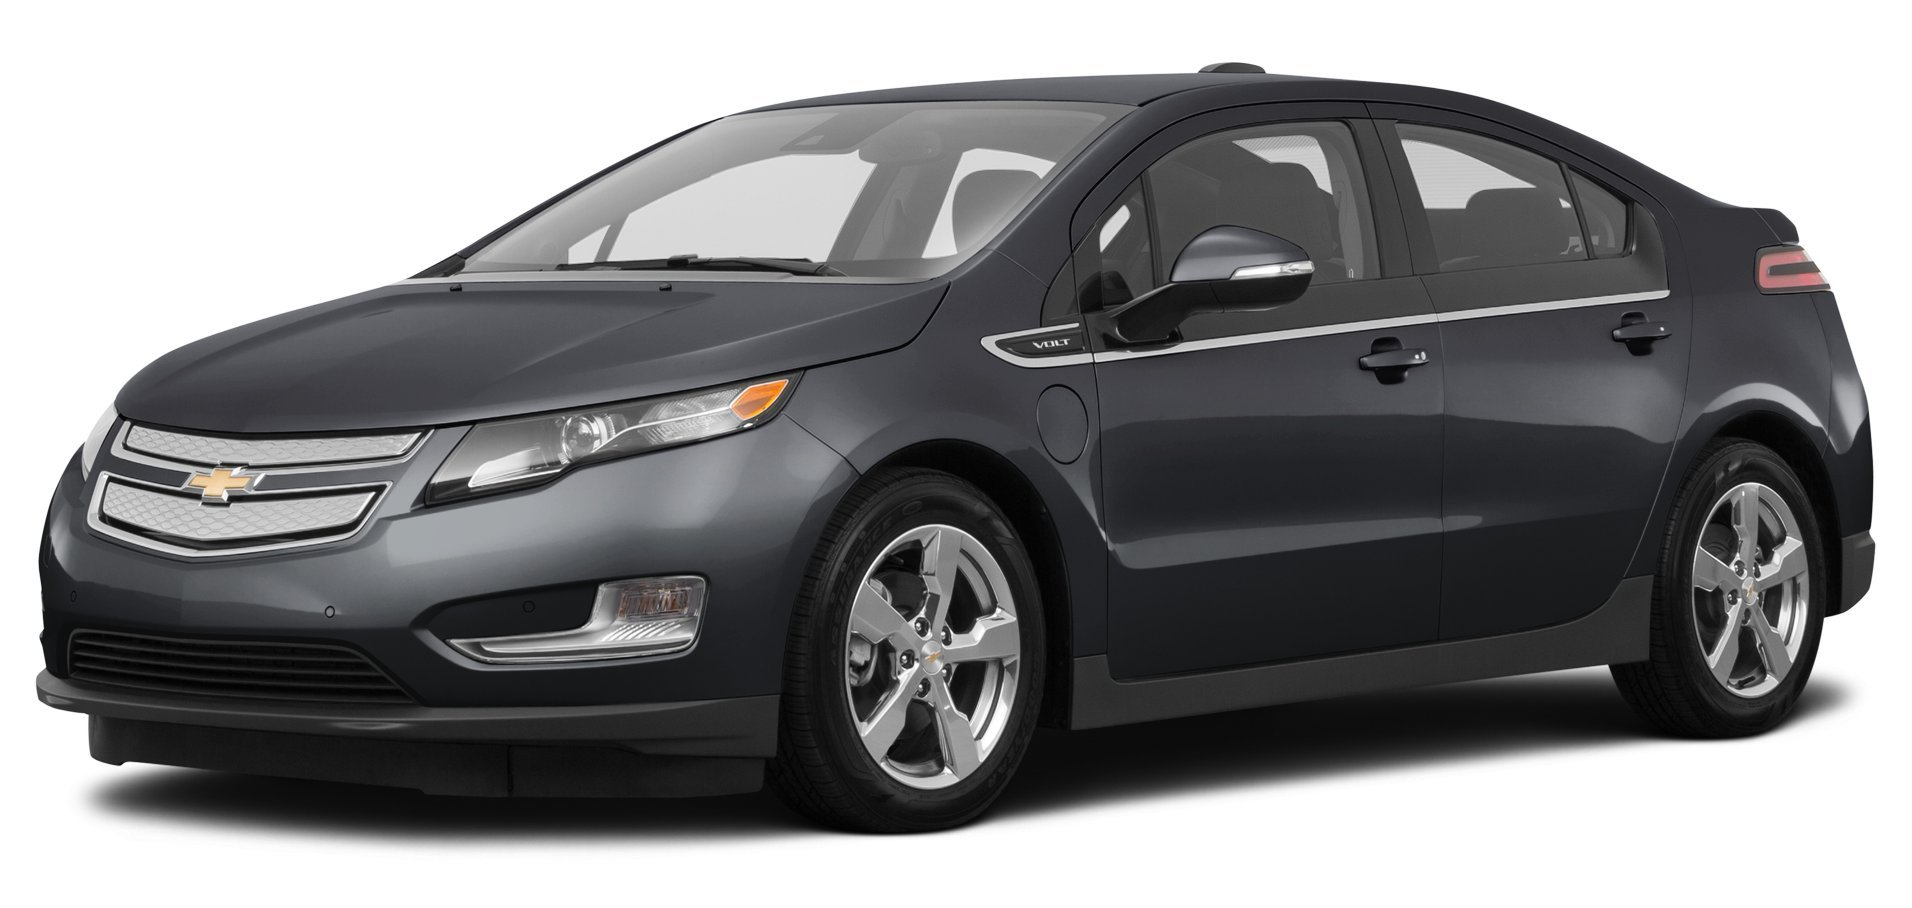 2015 Chevrolet Volt Reviews Images And Specs Vehicles Chevy Electric 5 Door Hatchback